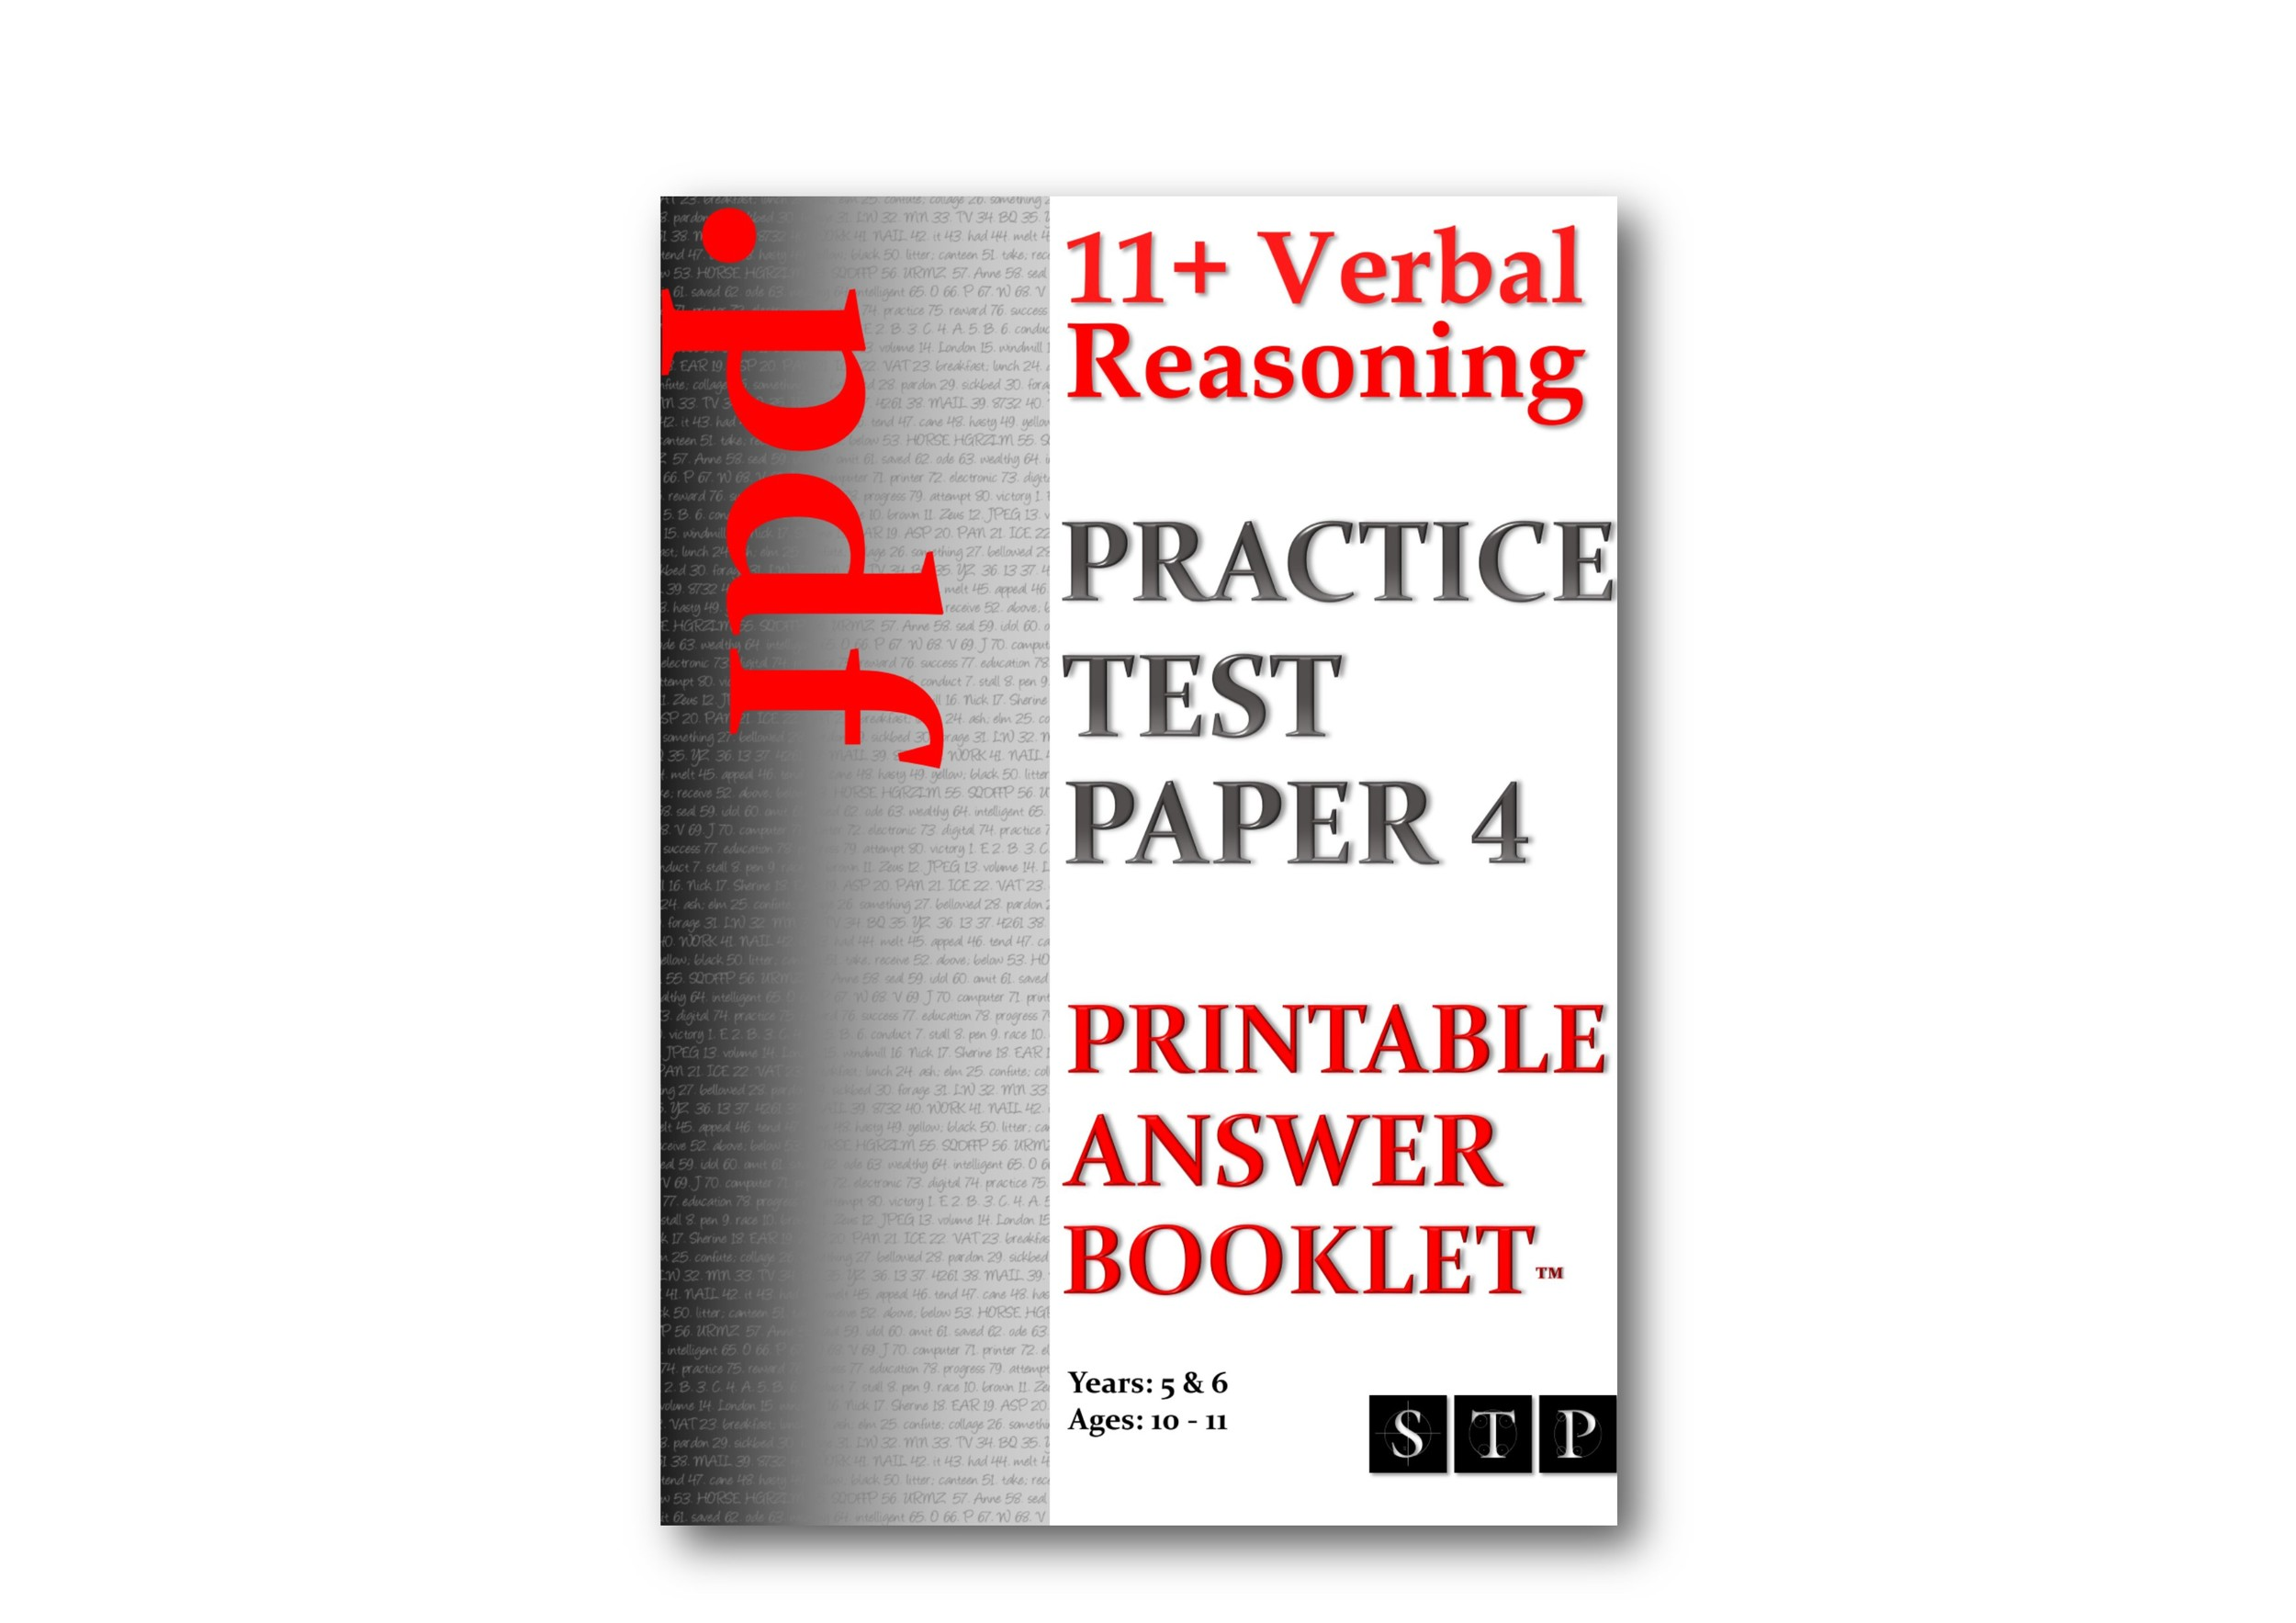 11+ Verbal Reasoning Practice Test Paper 4 (Printable Answer Booklet).jpg